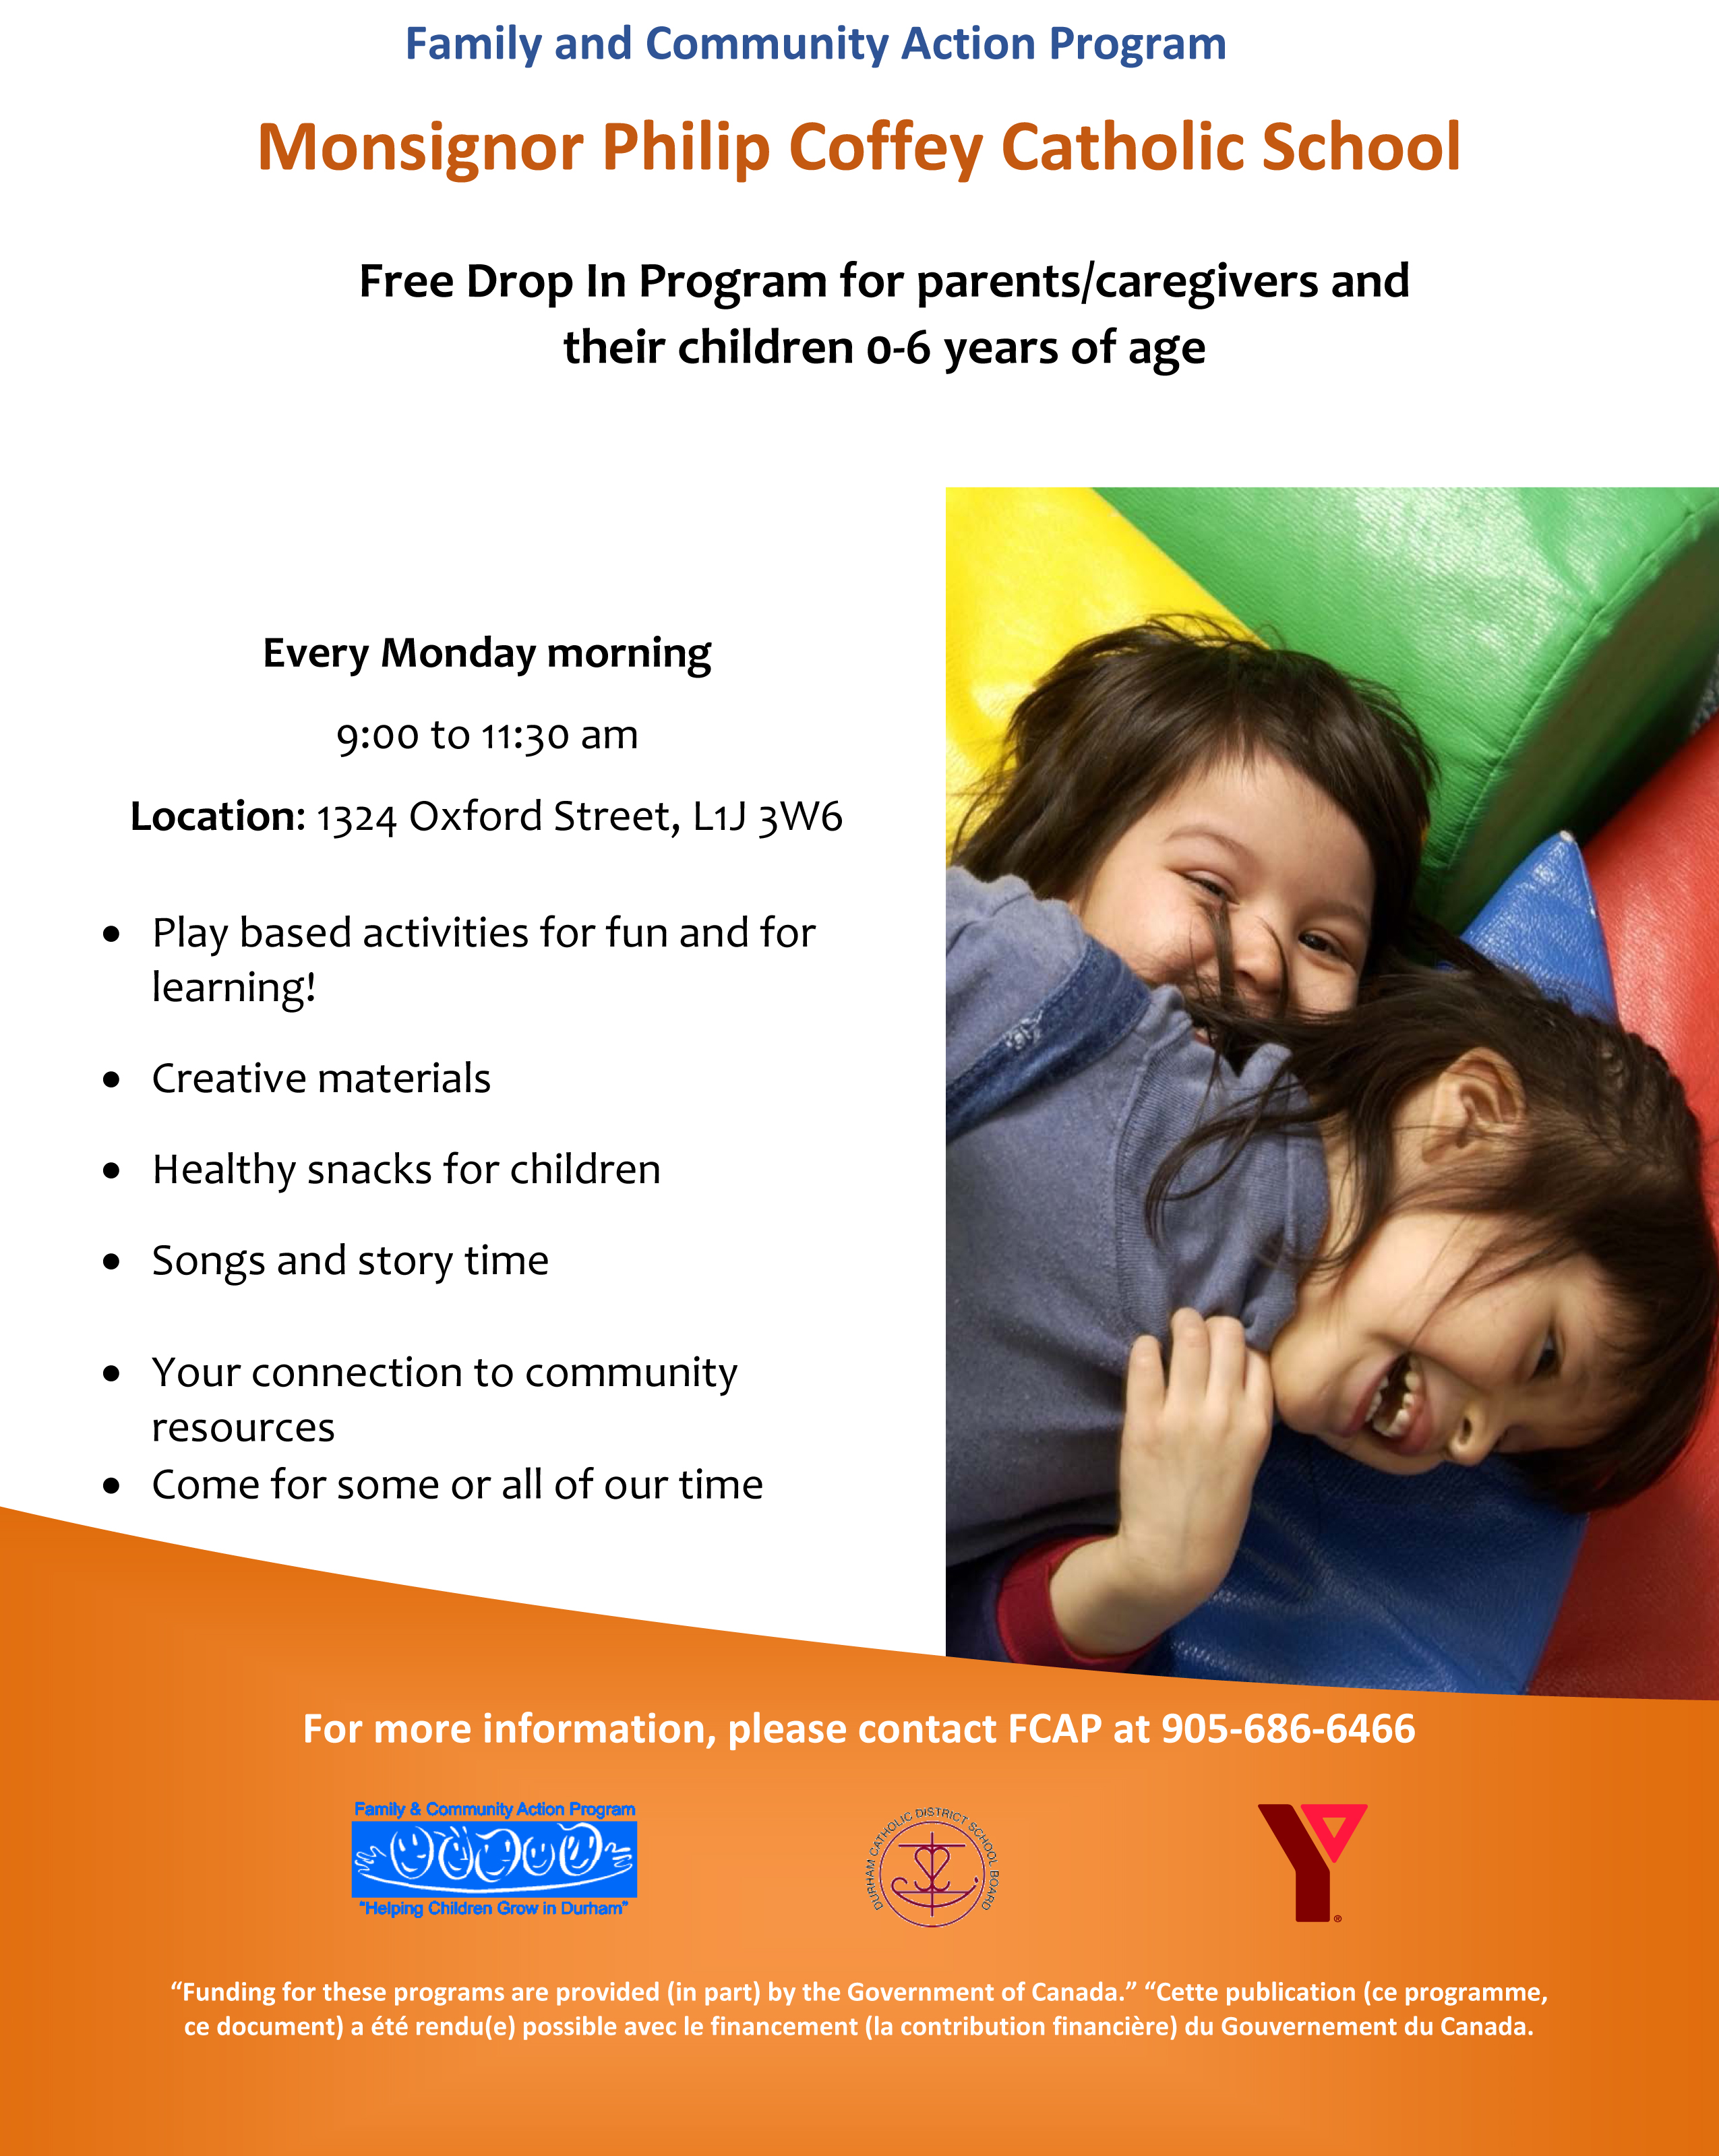 Flyer promoting Free Drop In Program for parents and caregivers and their children 0-6 years of age